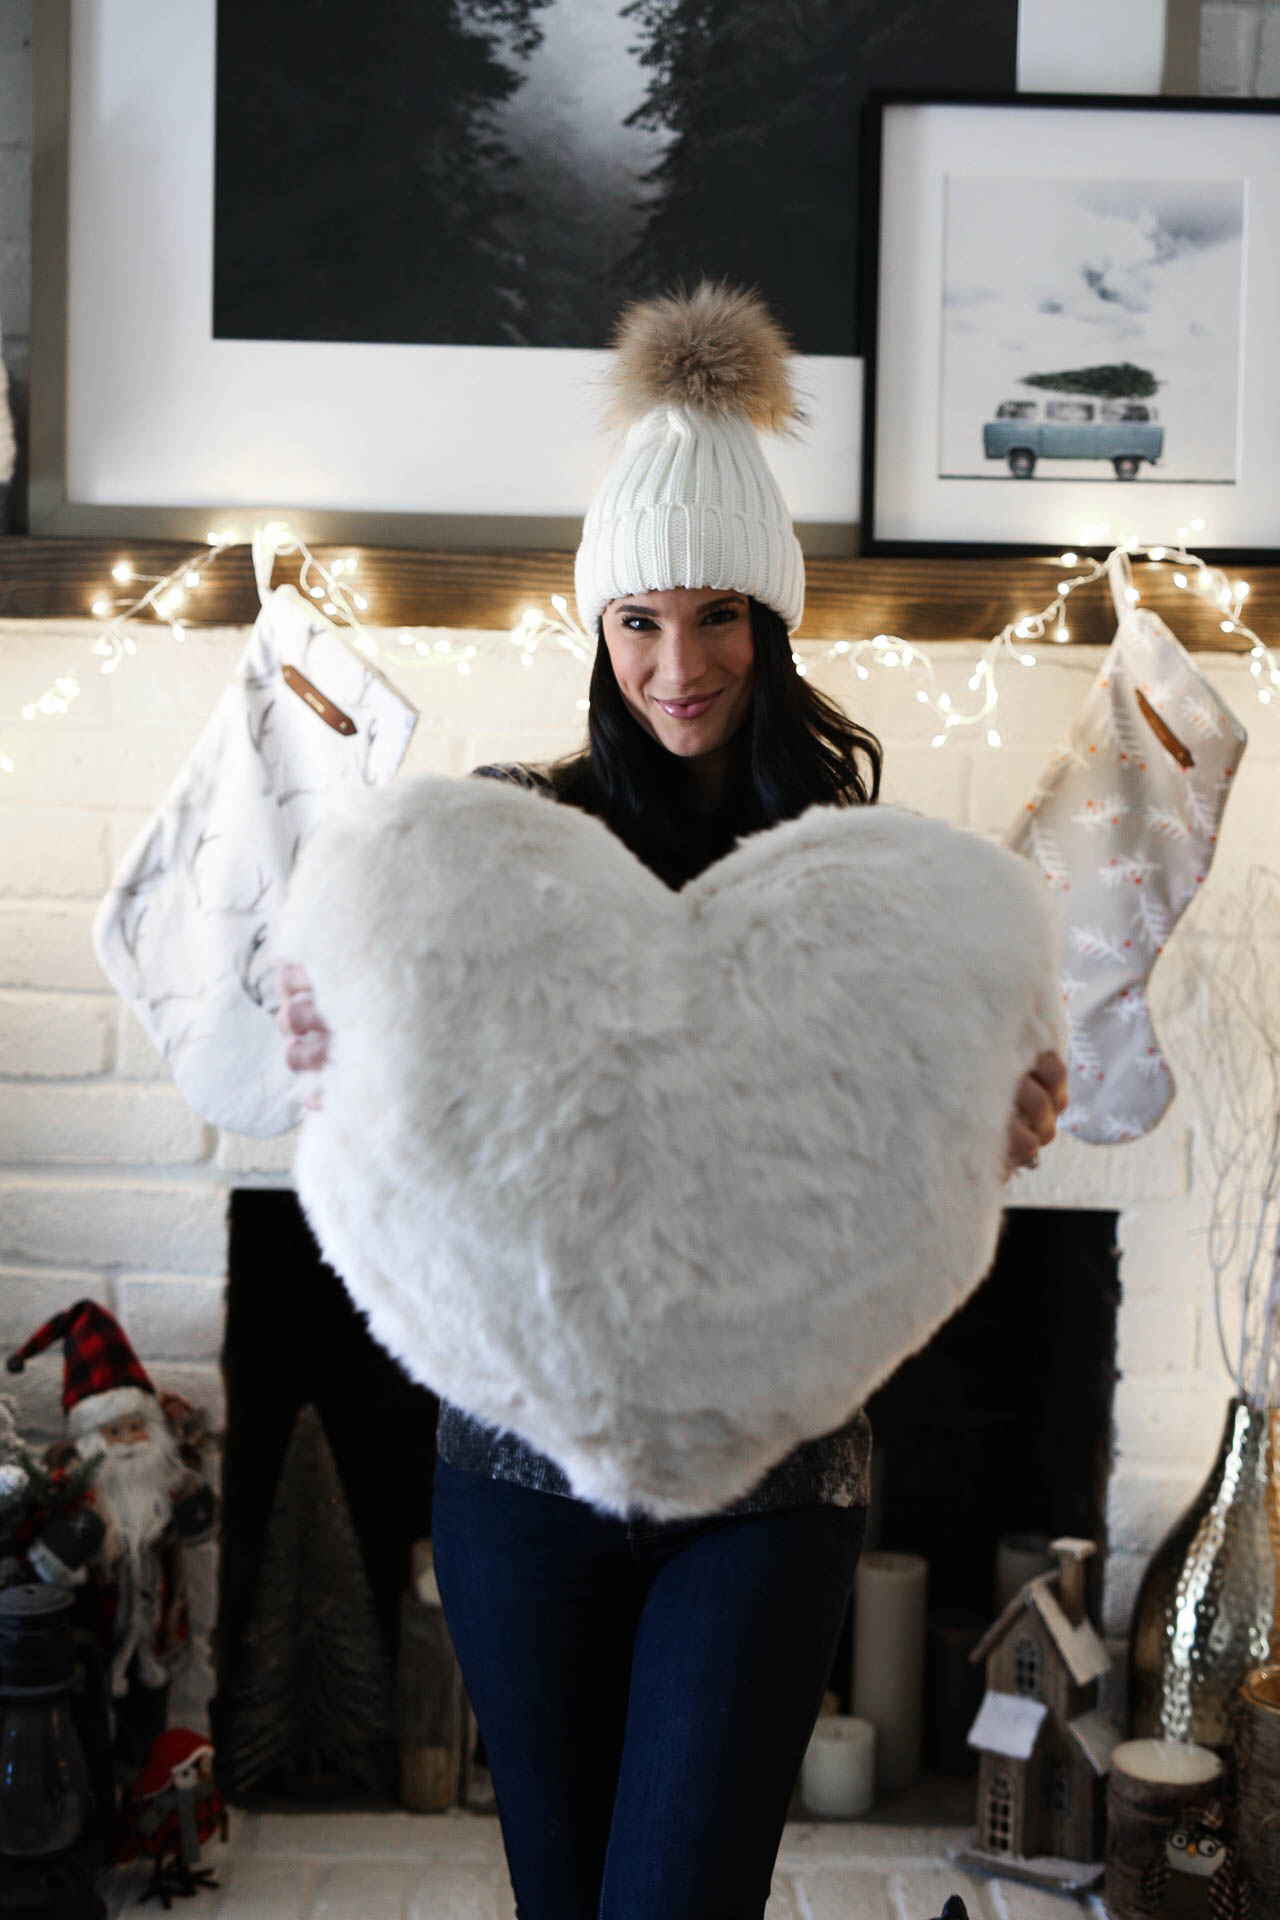 How I'm Giving Back This Holiday Season & Beyond | 7 Creative Ideas | holiday giving tips | ways to give back during the holidays || Dressed to Kill #givingseason #holidaygiving #giveback - 7 Ways to Give Back During the Holidays by popular Austin blogger Dressed to Kill